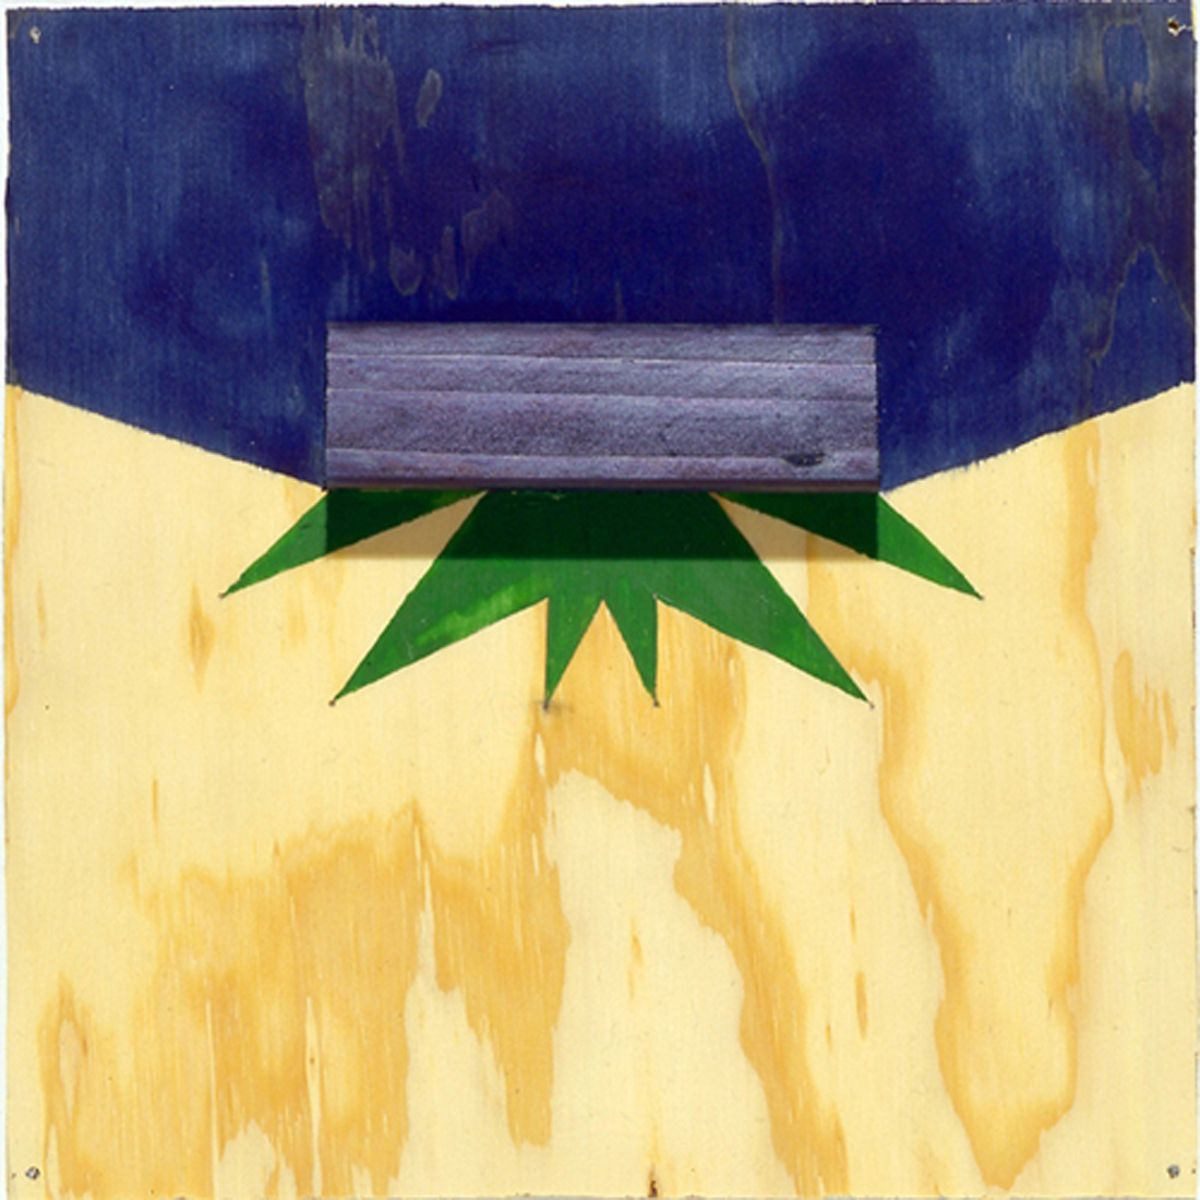 Richard Tuttle, Two With Any To #1,1999